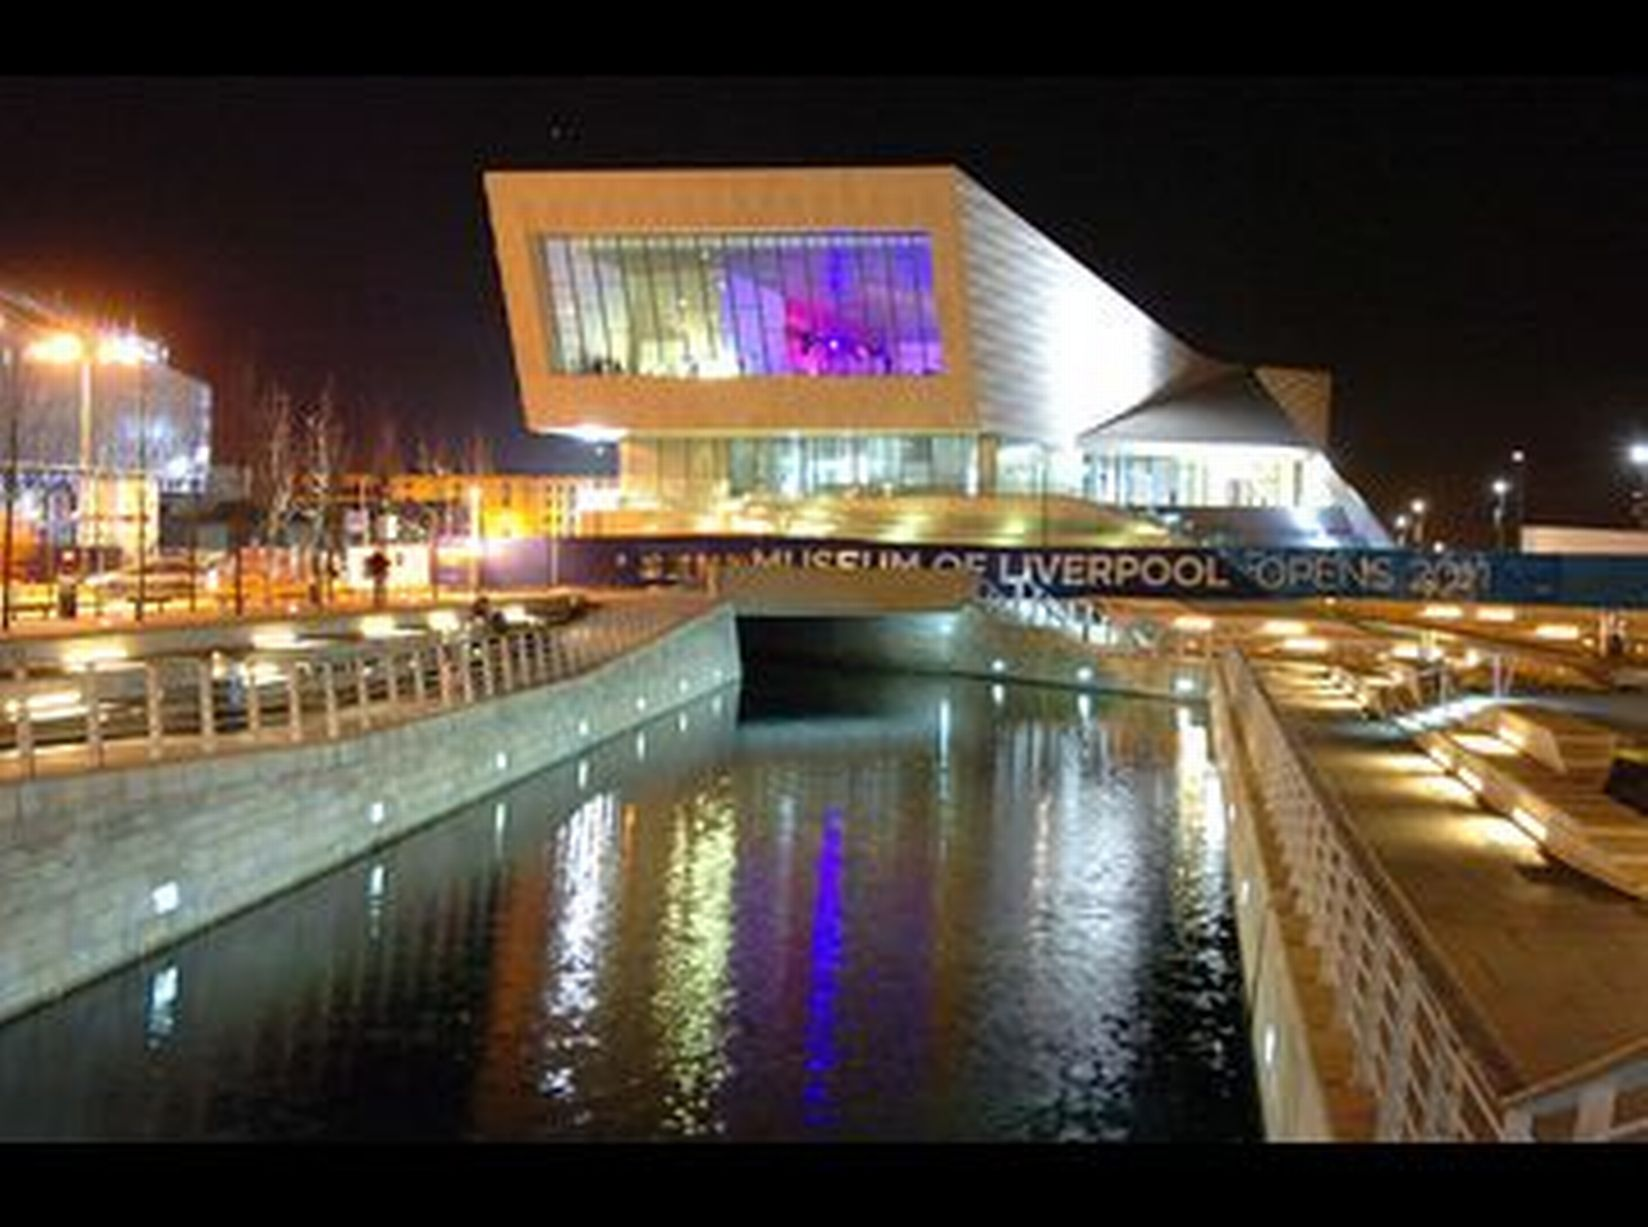 Museum of Liverpool Liverpool, Pictures of the new Museum of Liverpool - Liverpool Echo